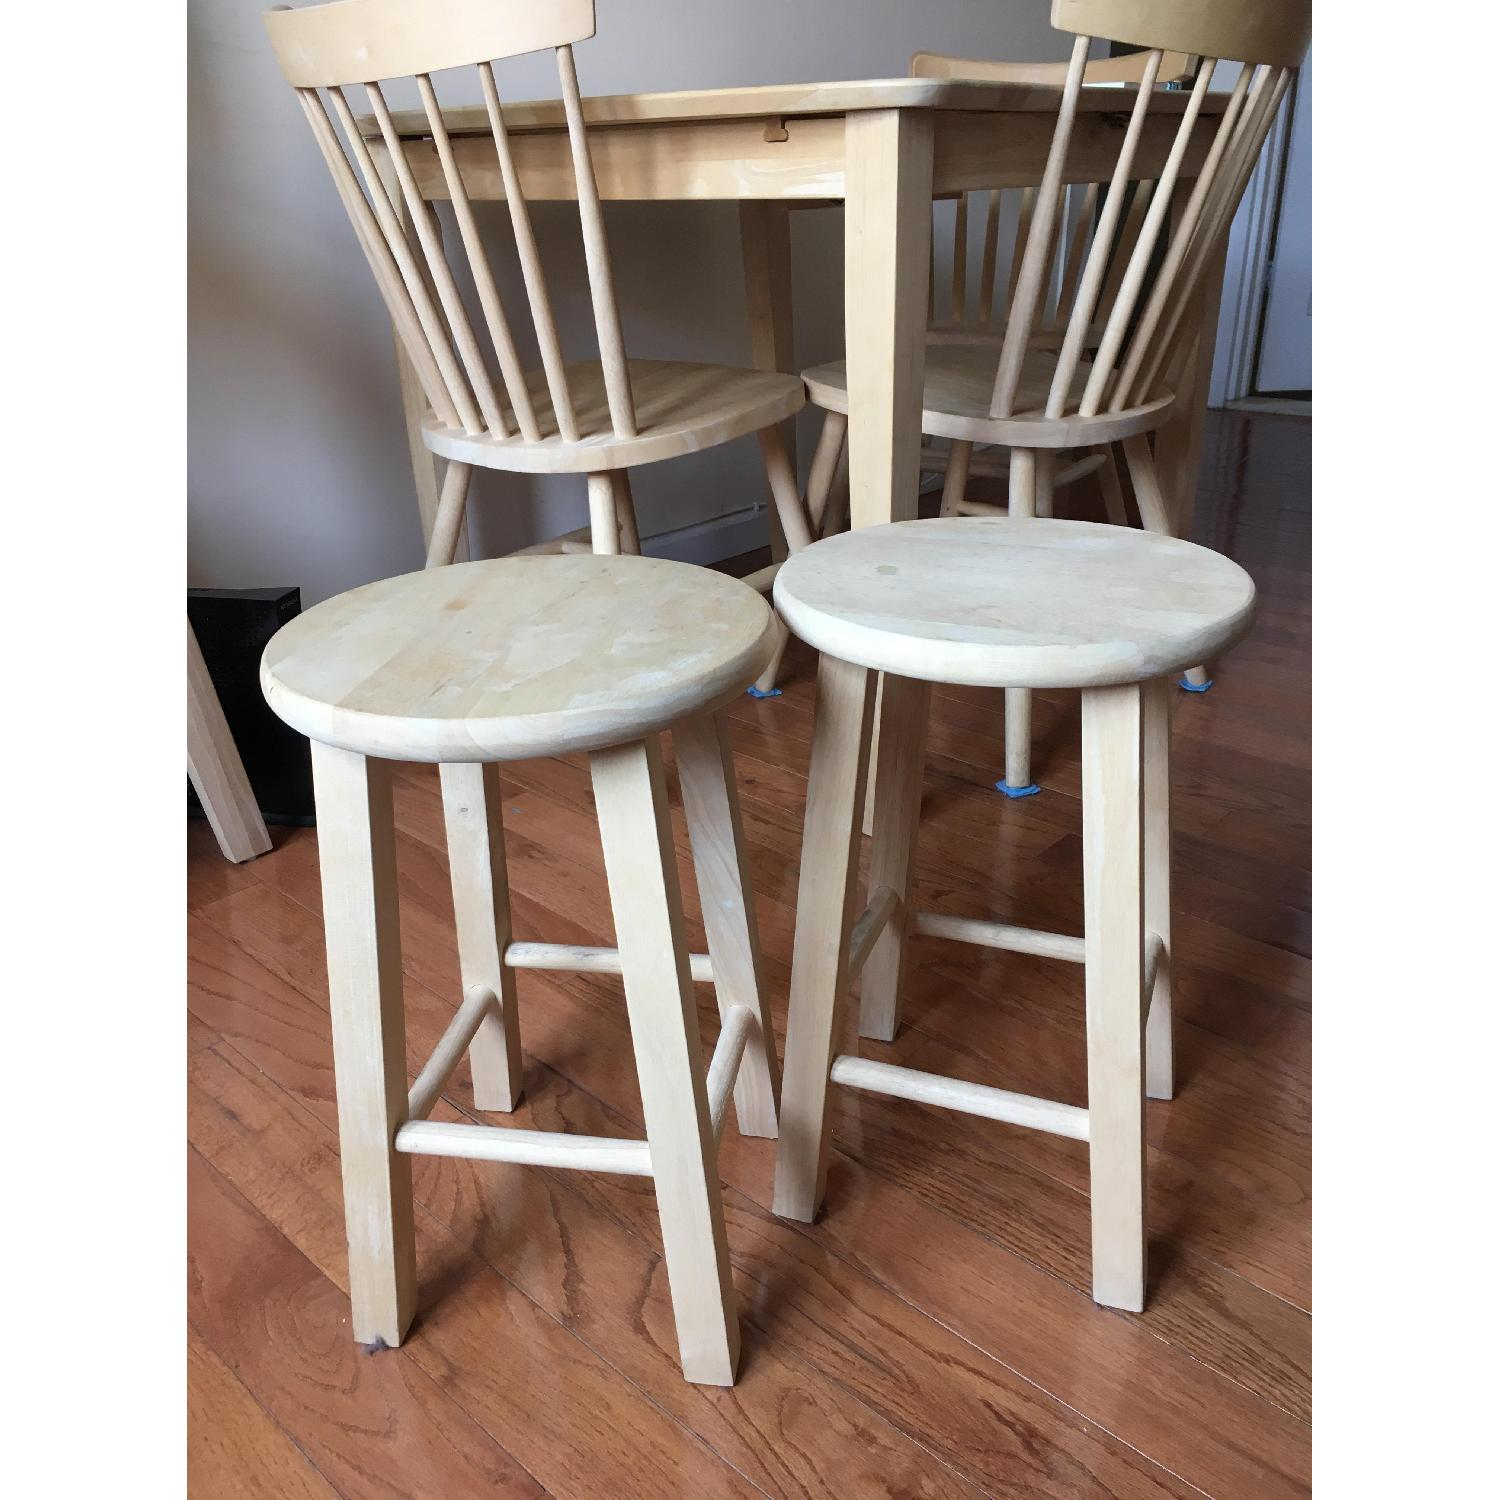 International Concepts Unfinished Wood Table w/ 4 Chairs - image-7